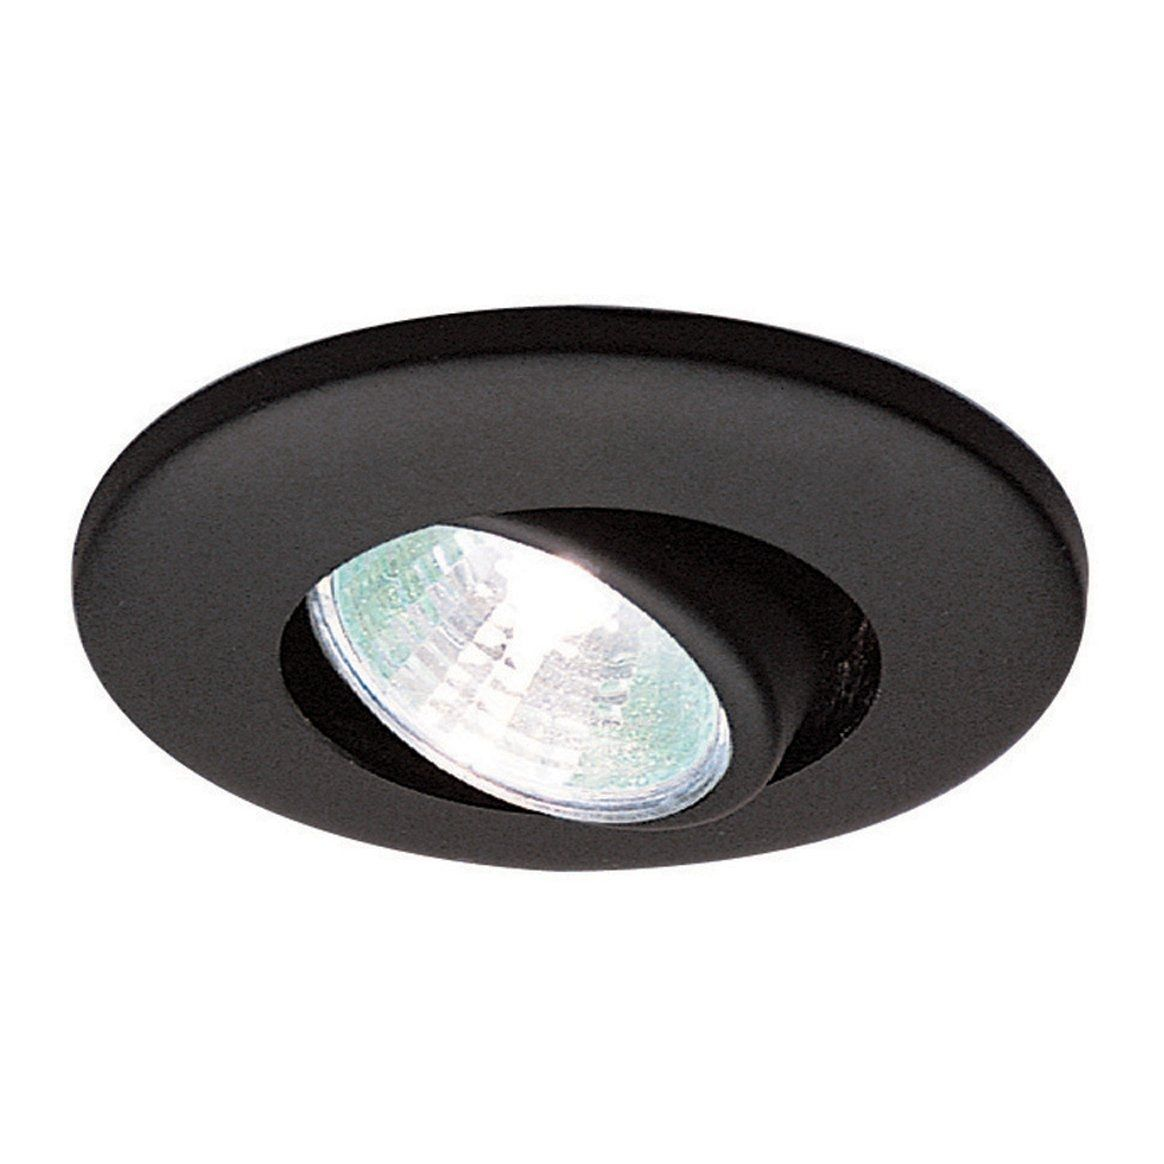 miniature low voltage recessed lighting fixtures http deai rank